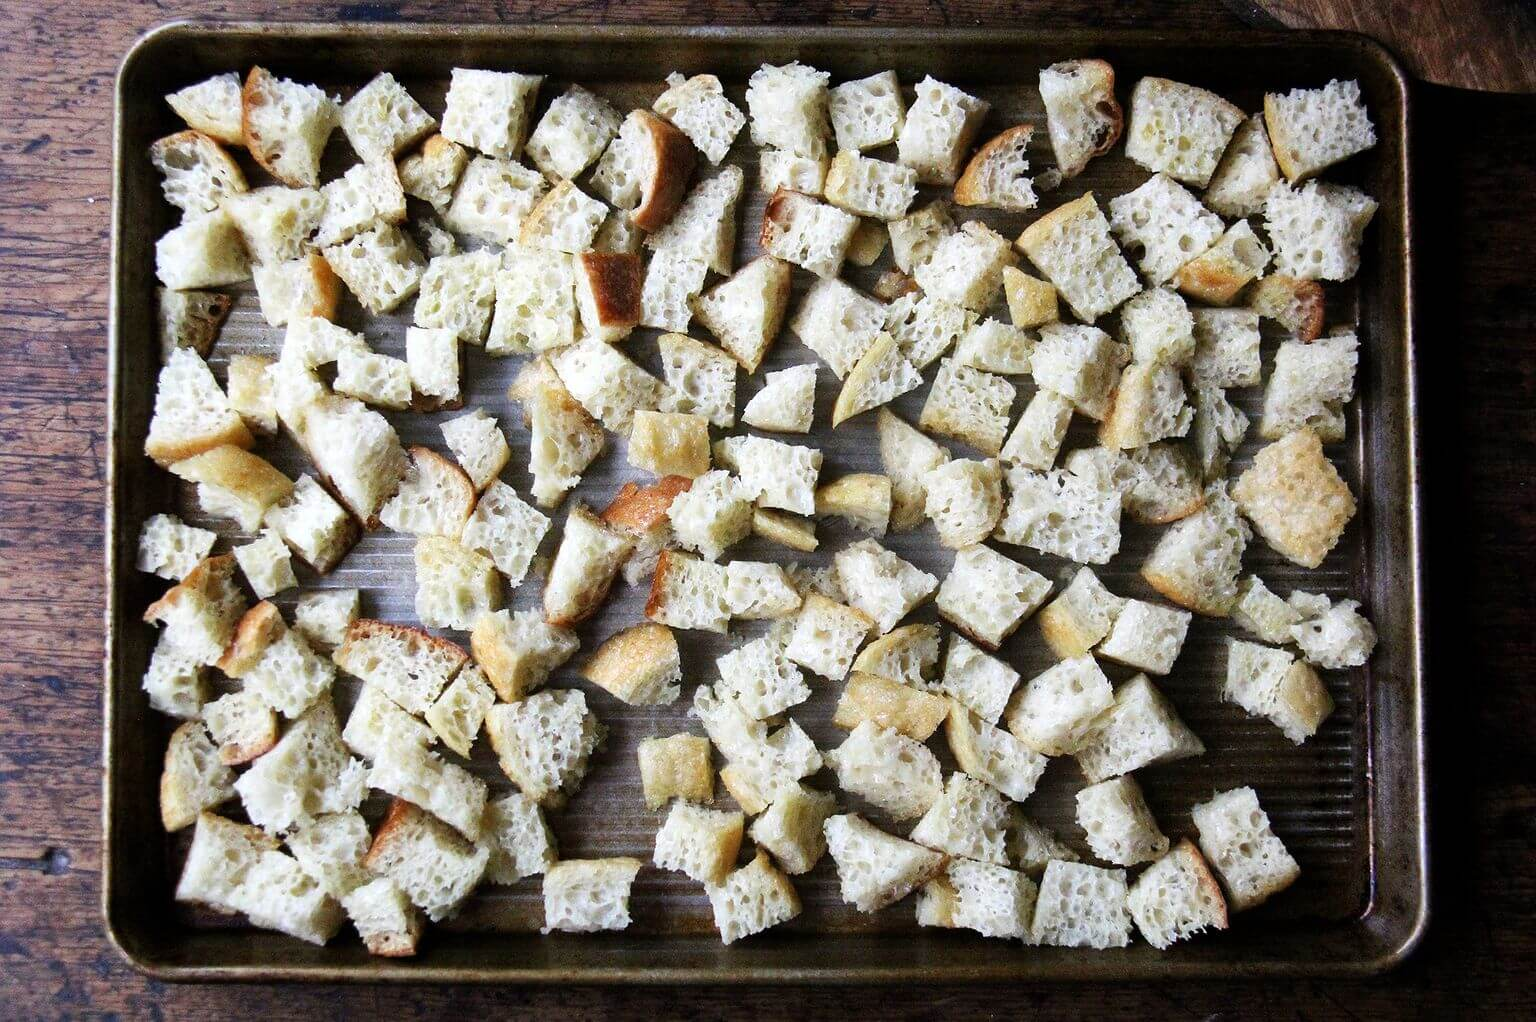 A sheet pan with cubed peasant bread tossed in olive oil.